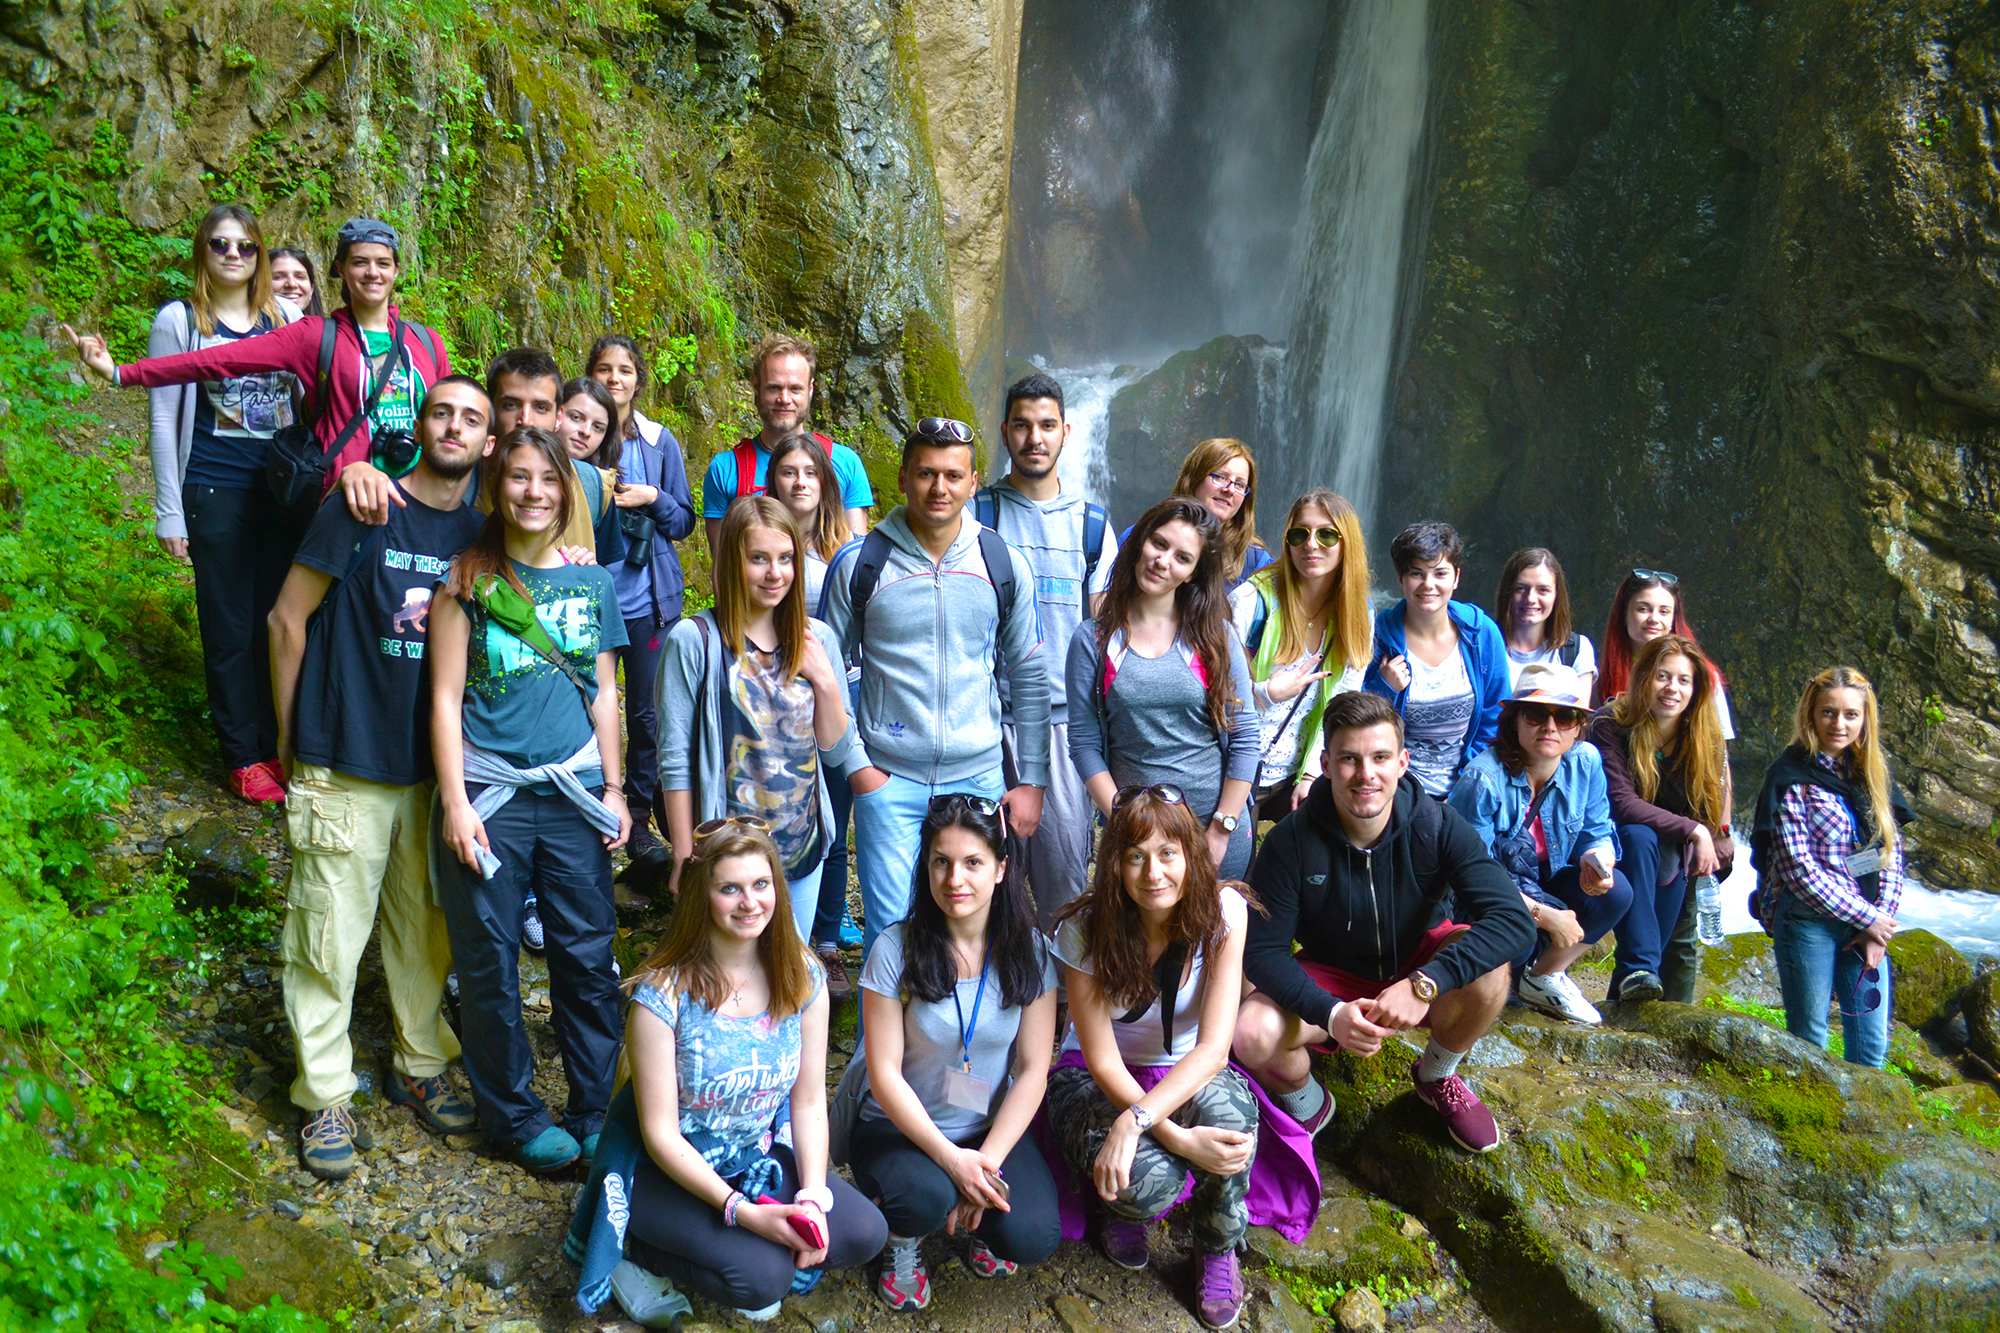 At Duf Water Falls in Mavrovo National Park